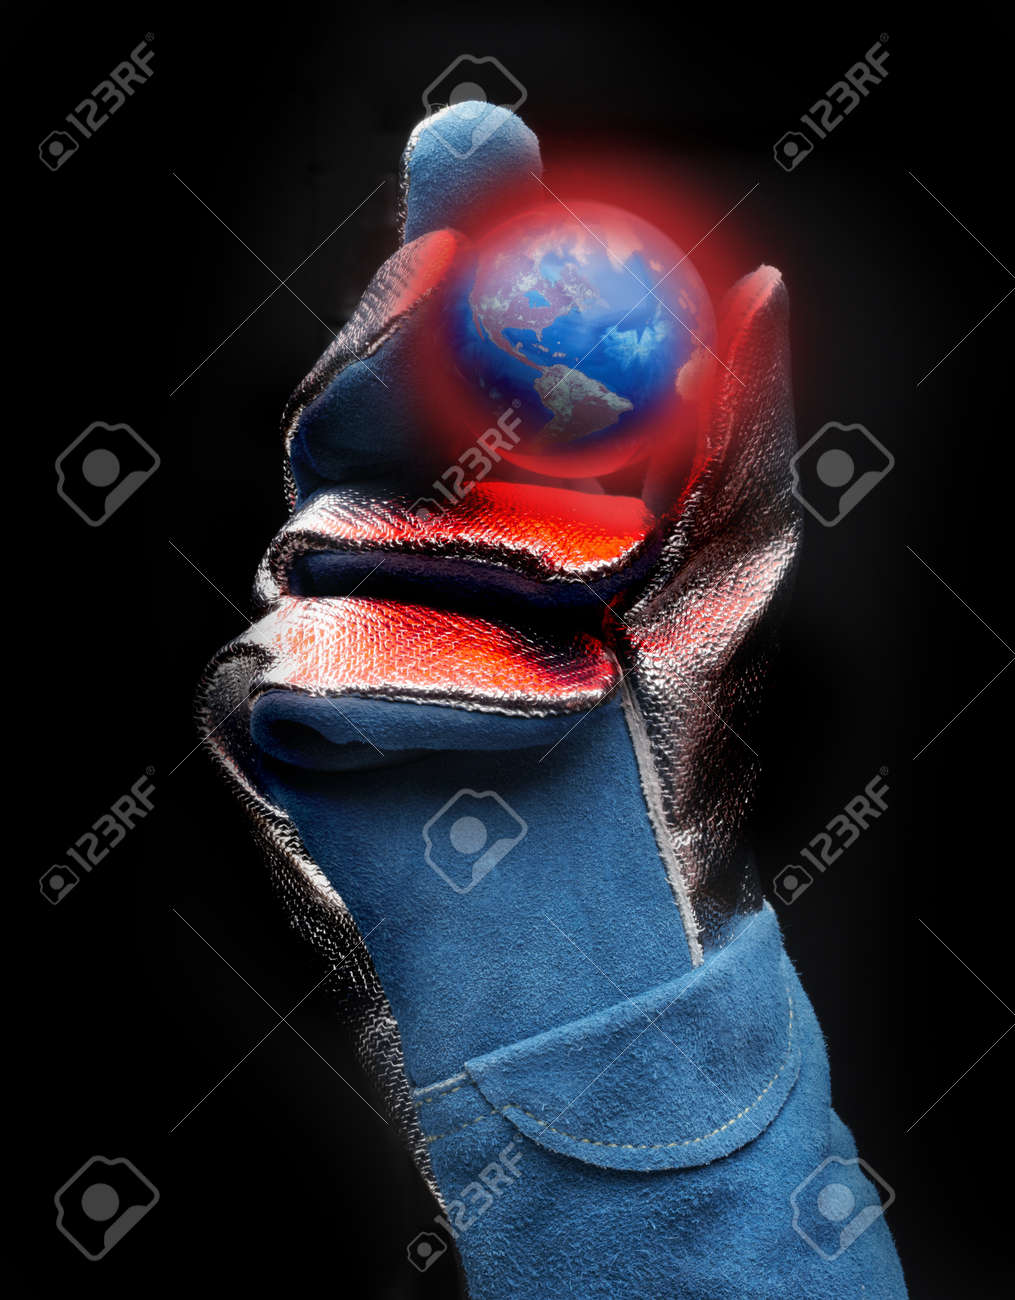 Asbestos gloved hand holds red hot model of earth with view of the Americas Stock Photo - 8651447